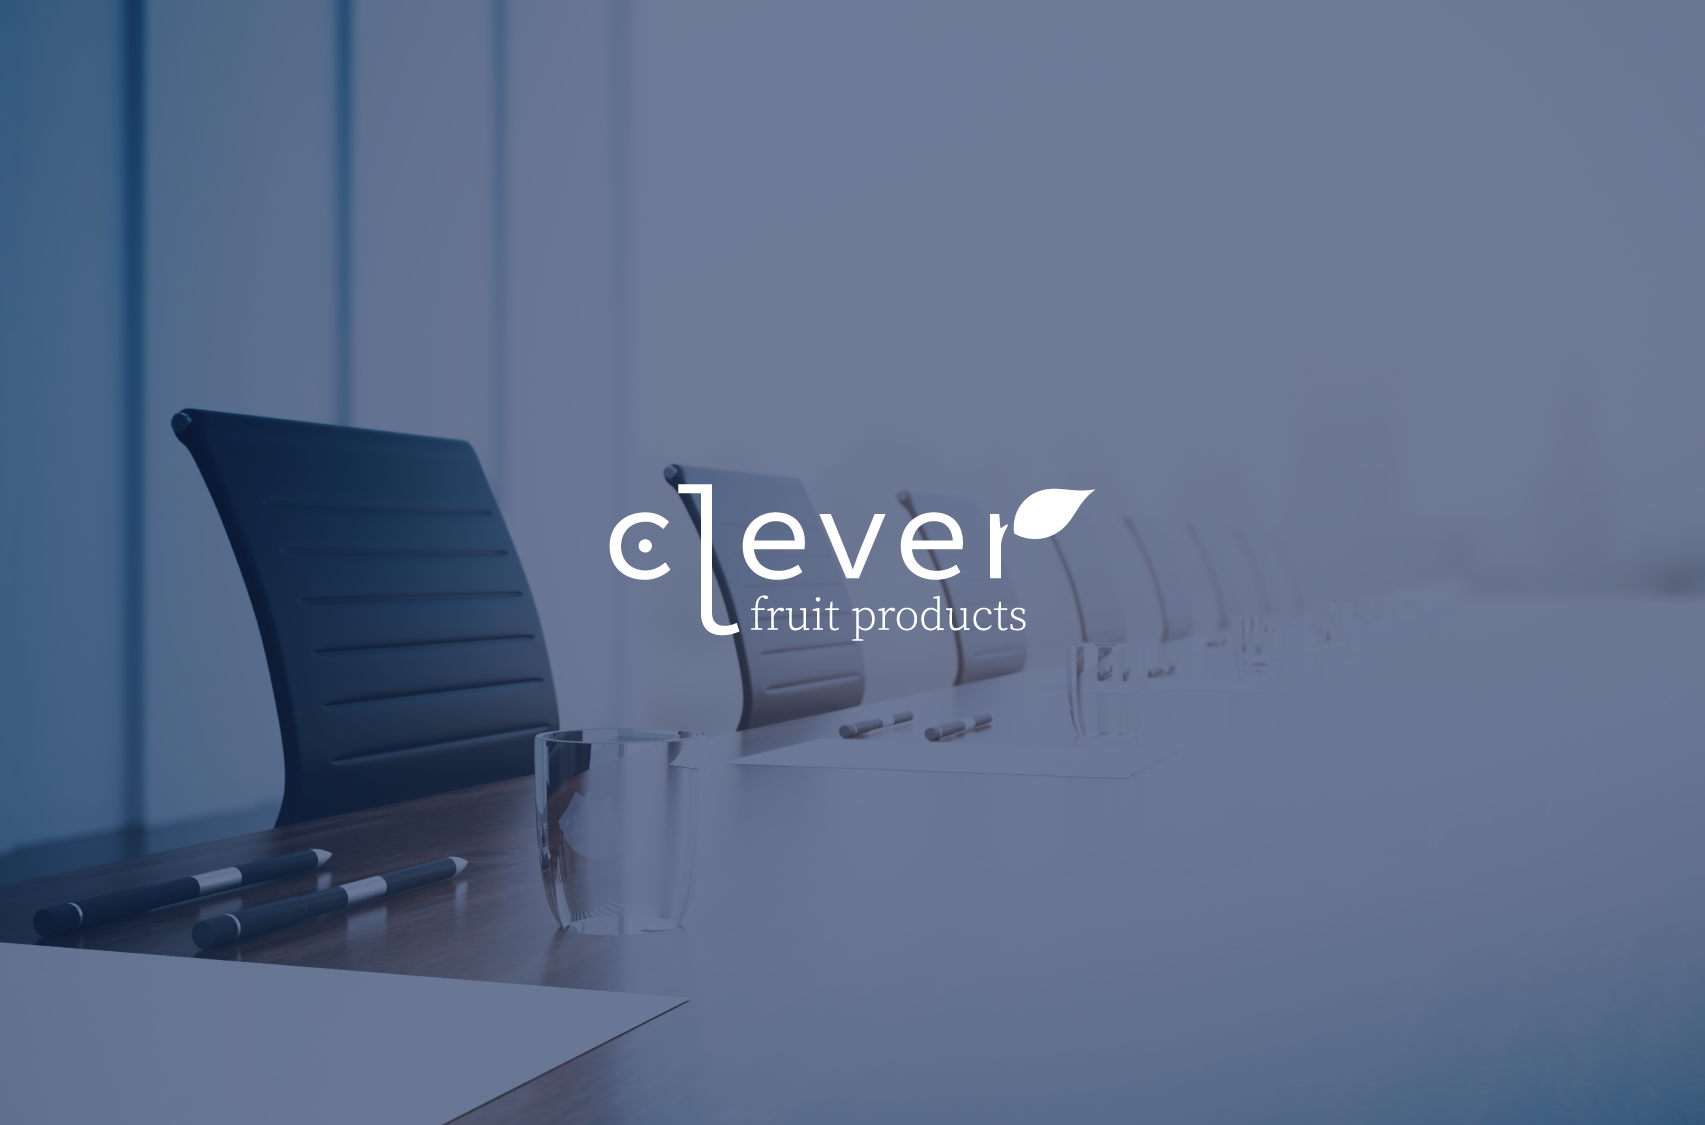 Clever Appoints Independent Directors